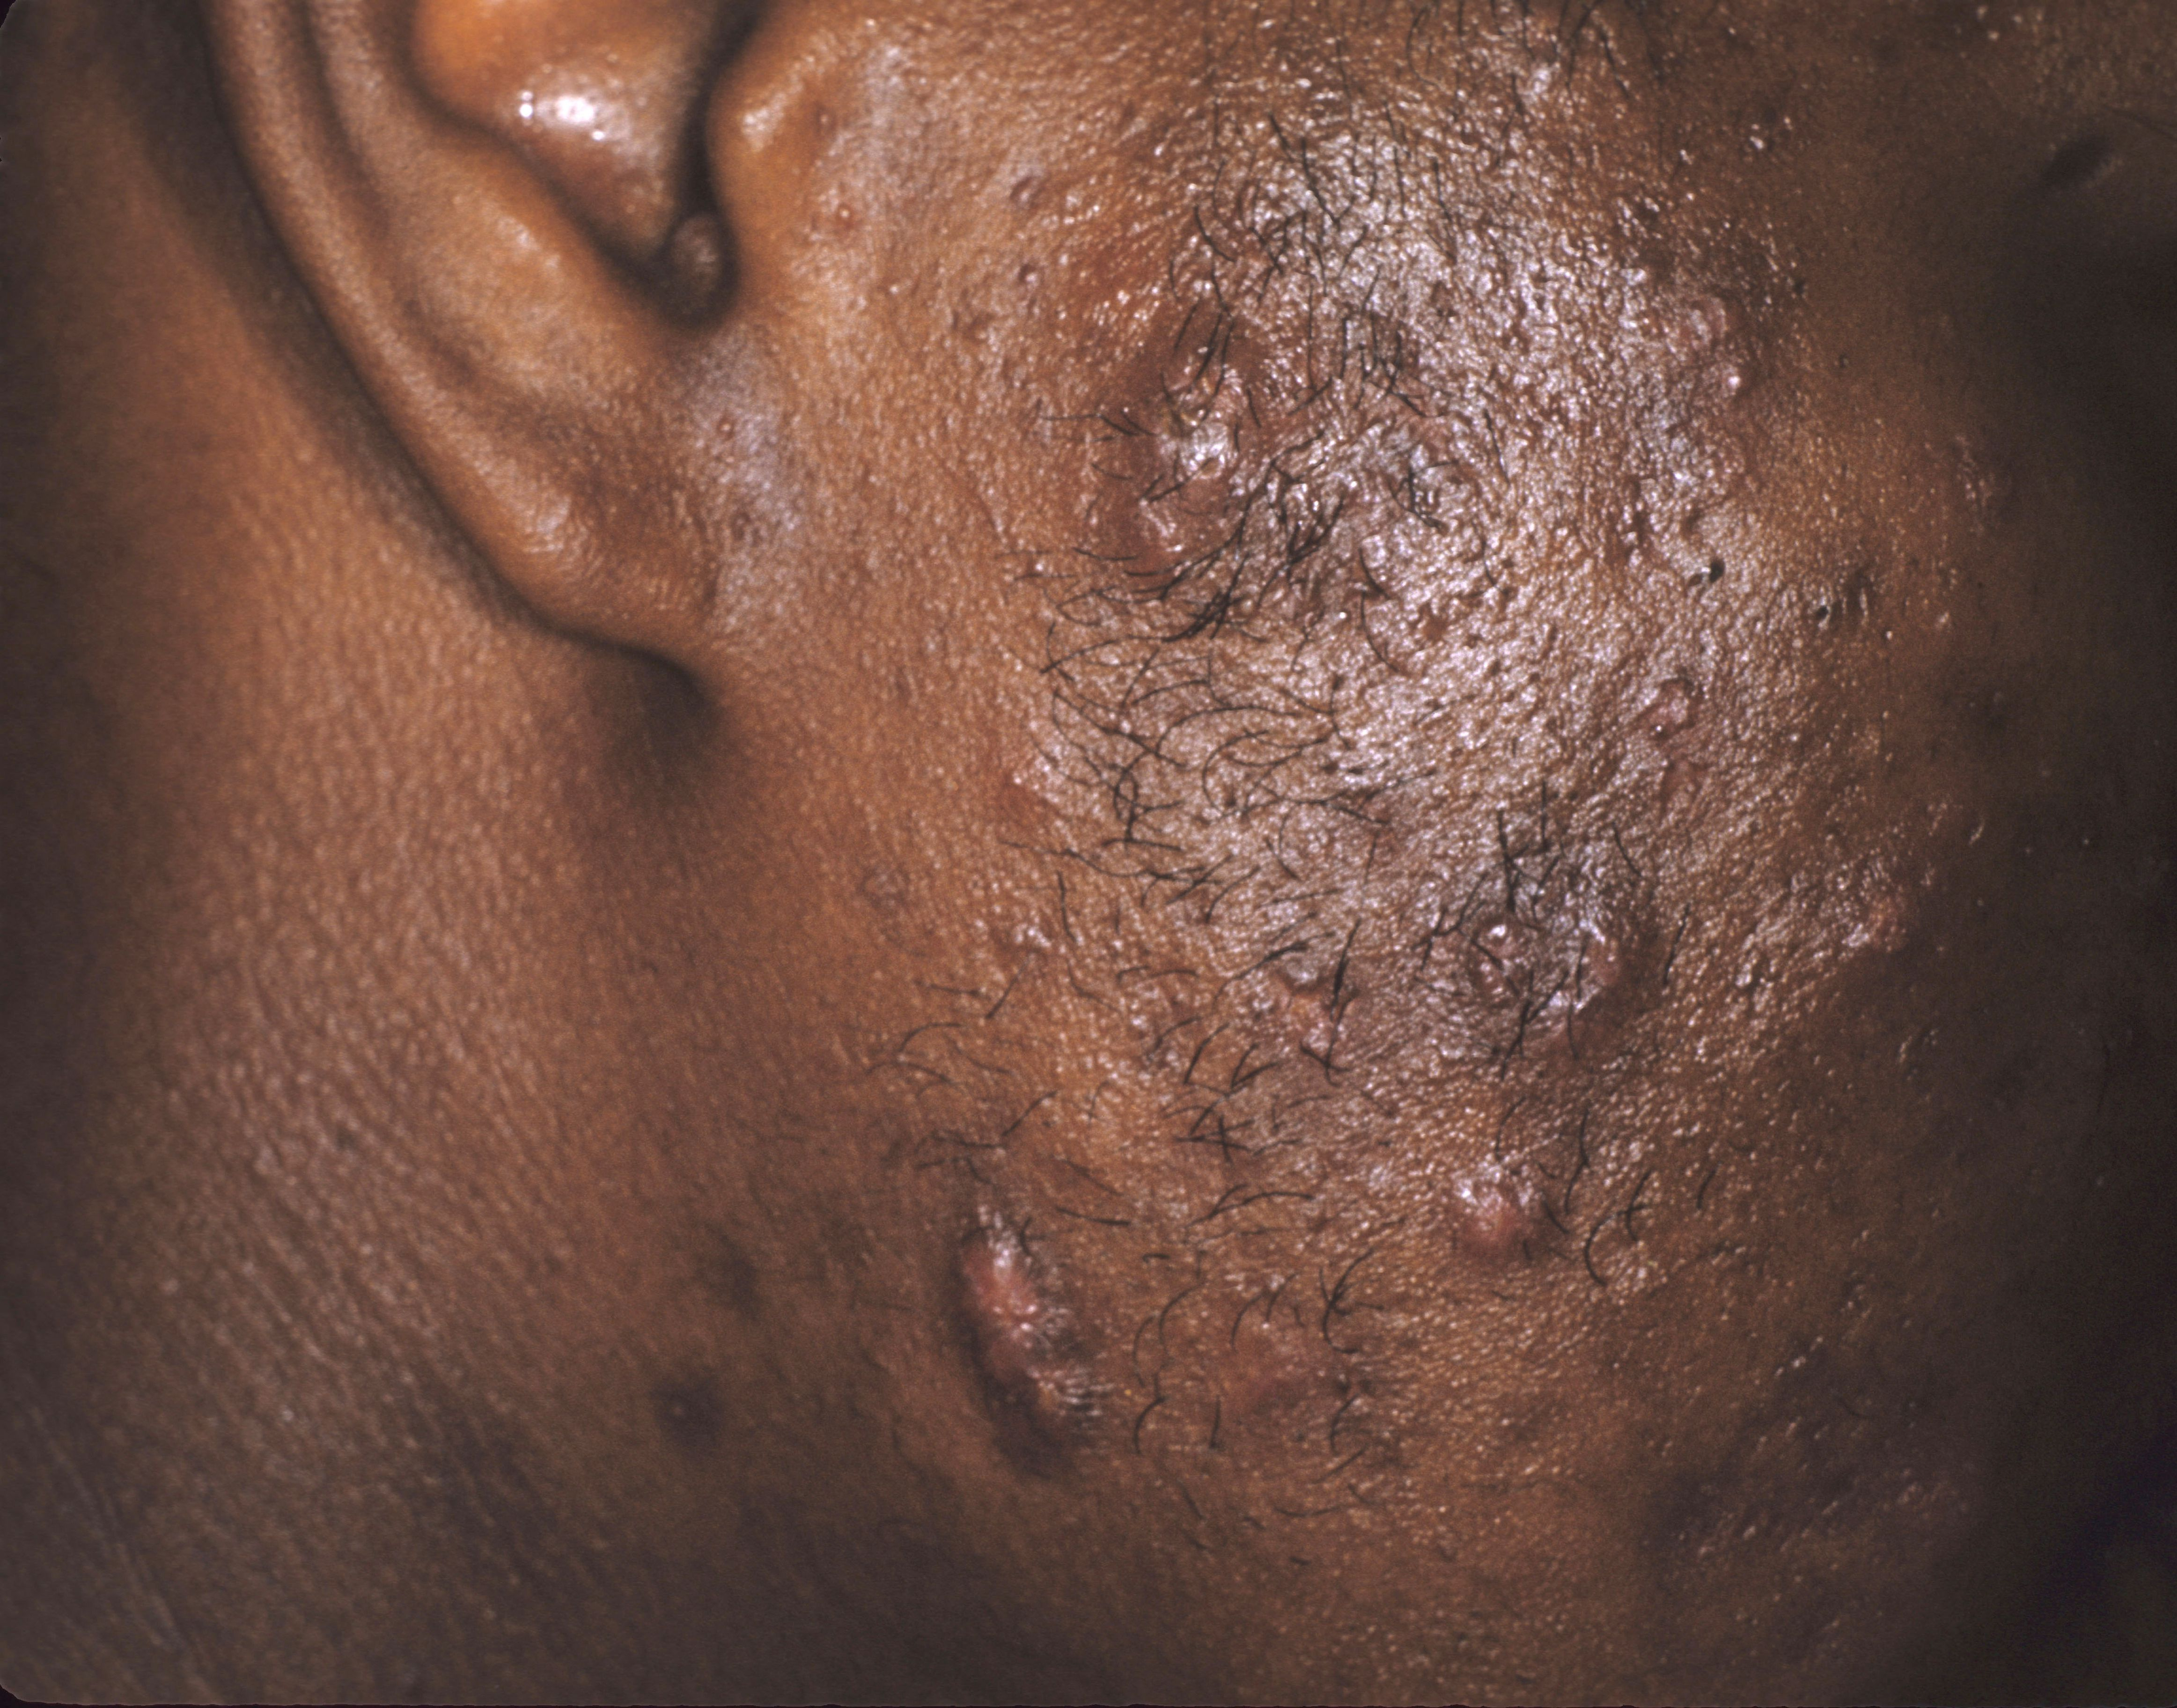 Alternatives To Accutane For Treating Acne-9705